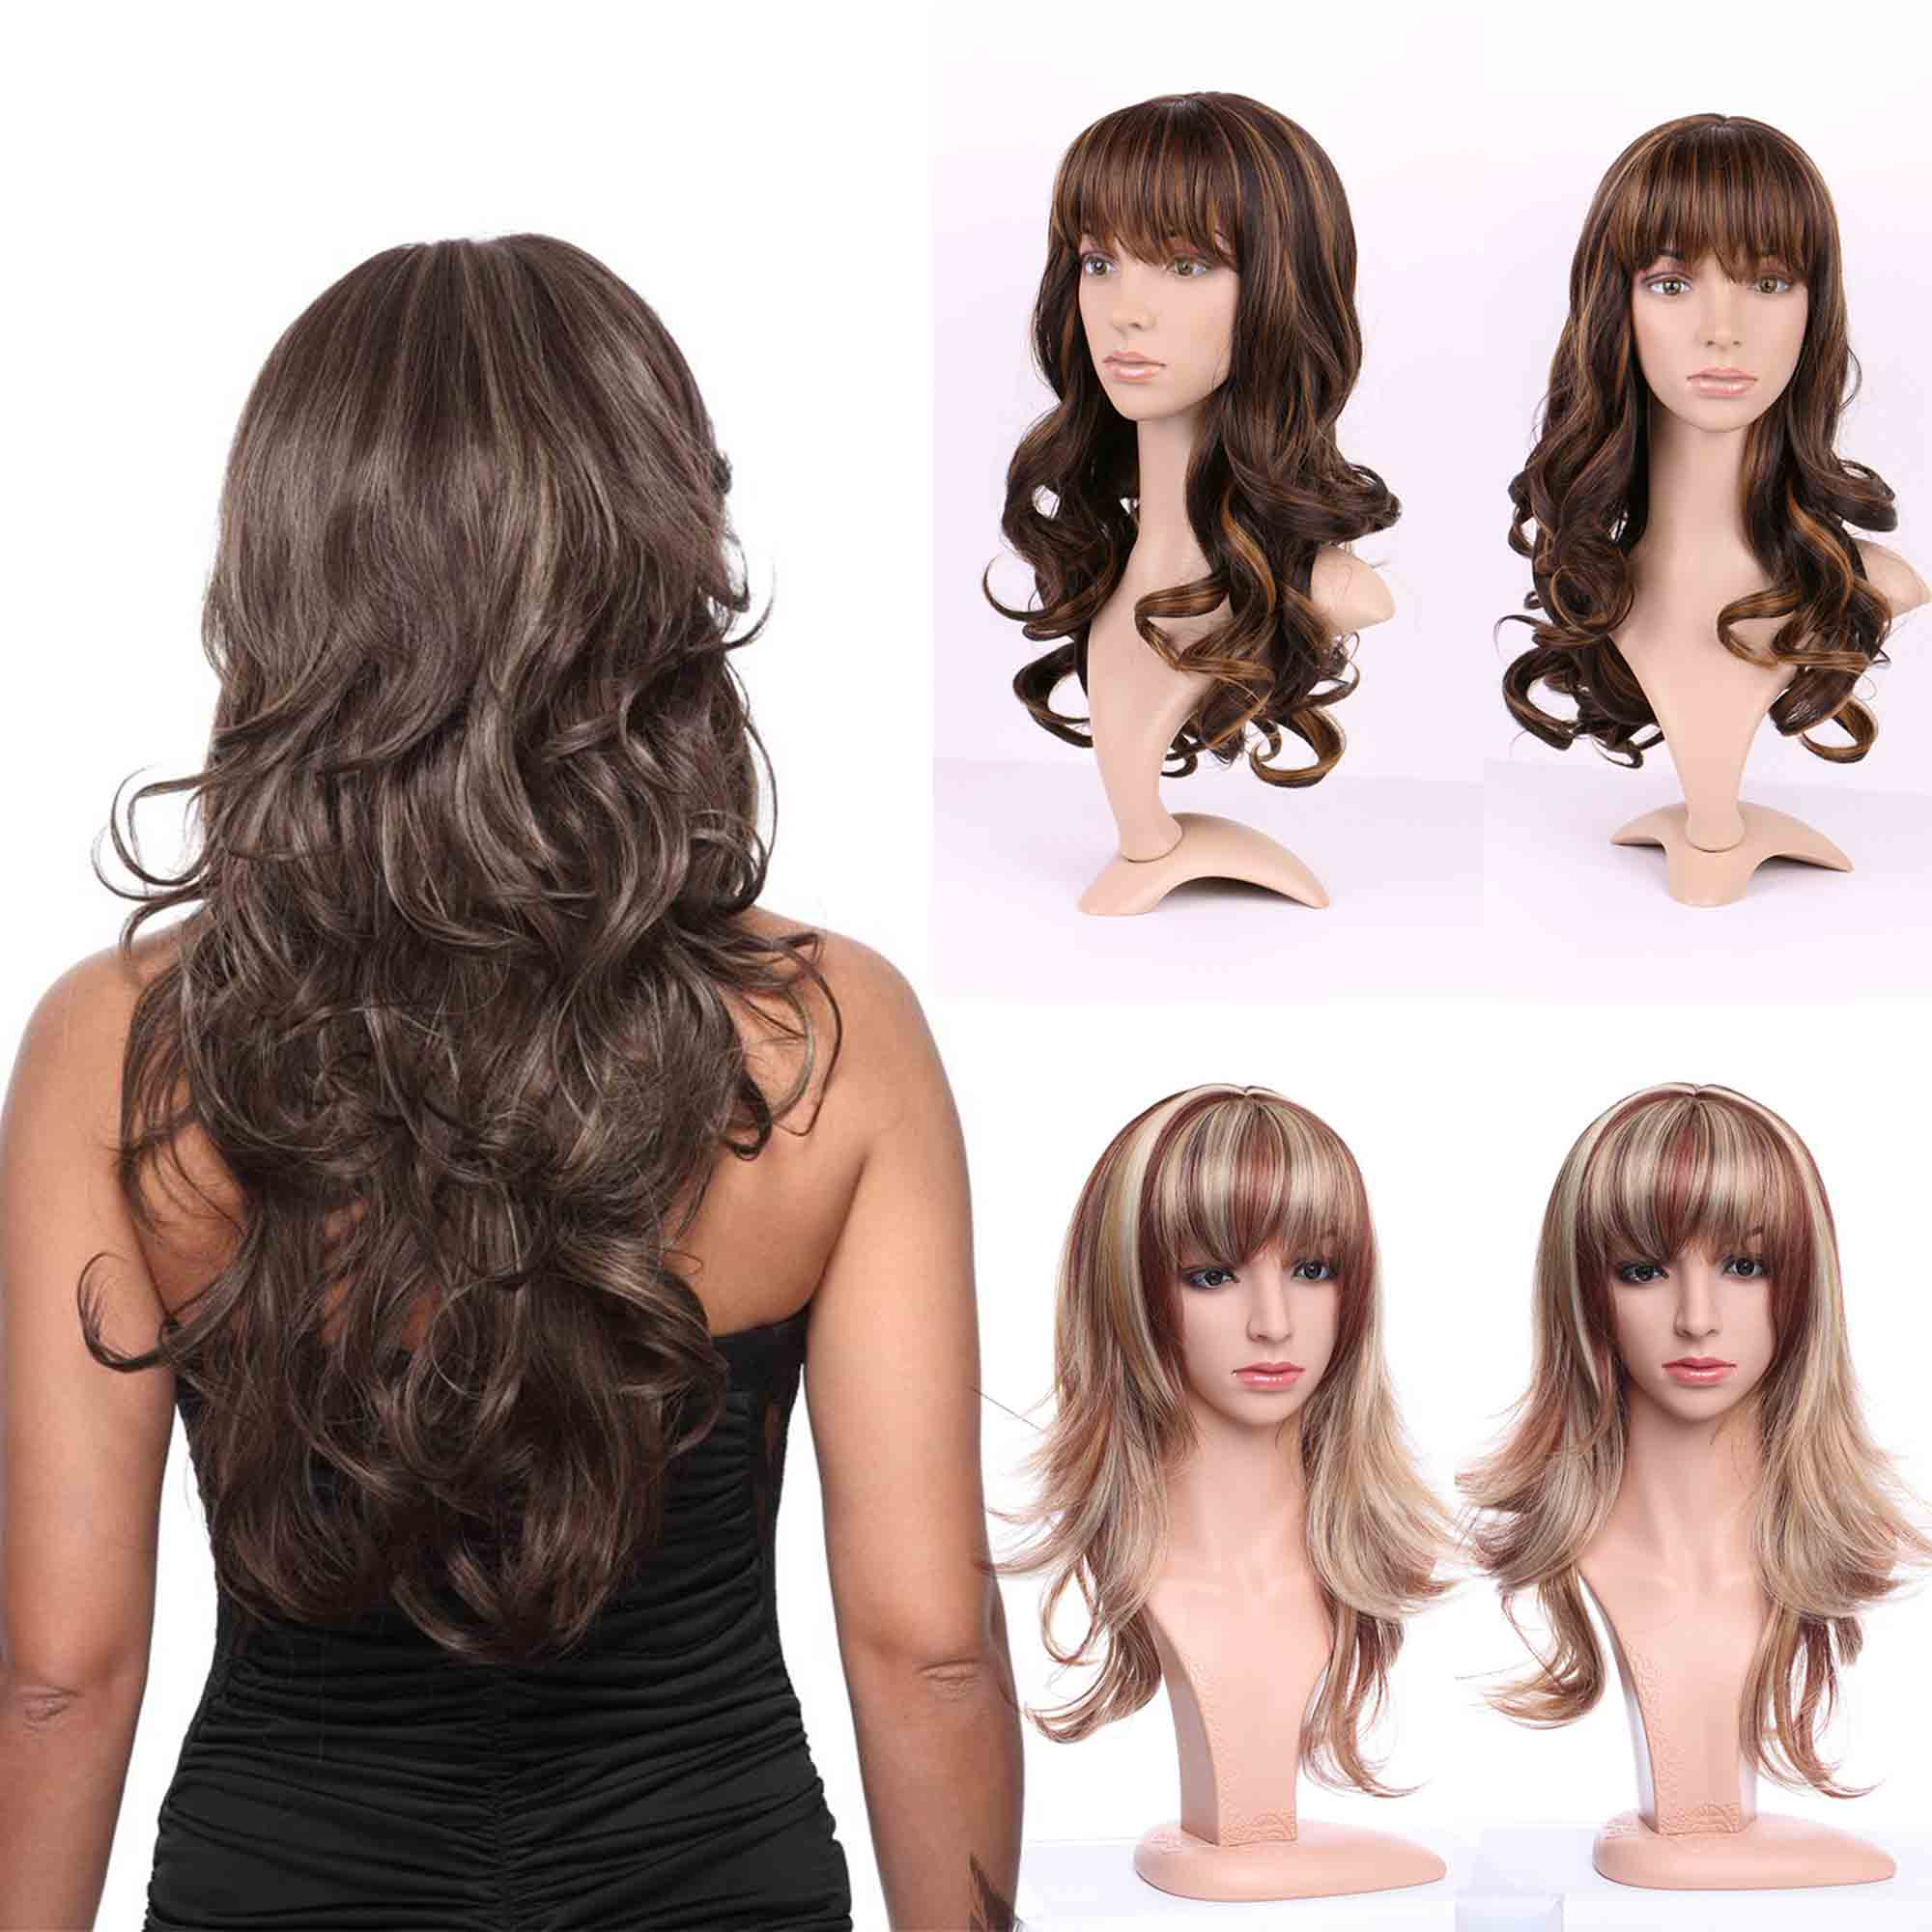 28/'/' Center Part Wig w// Long Layered Curls No Bangs Espresso Brown Cosplay NEW